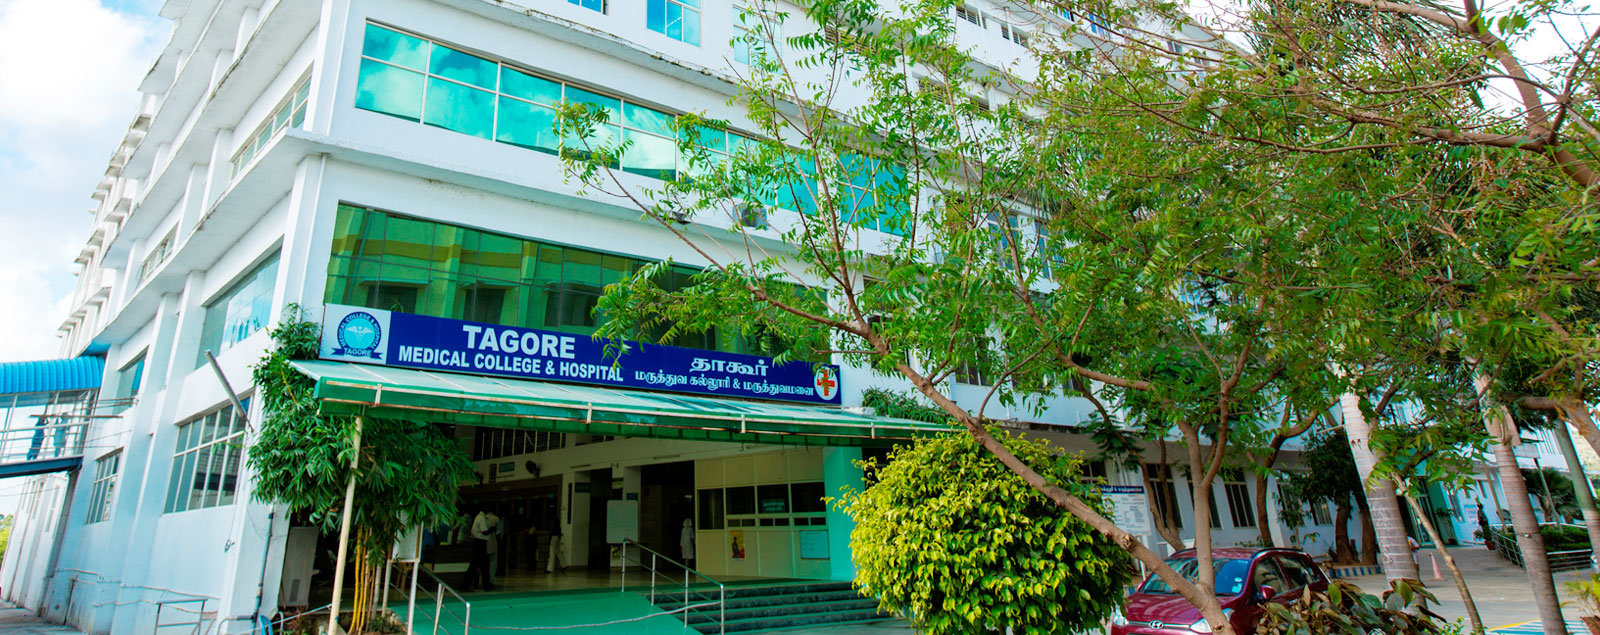 Tagore Medical College and Hospital, Chennai Image